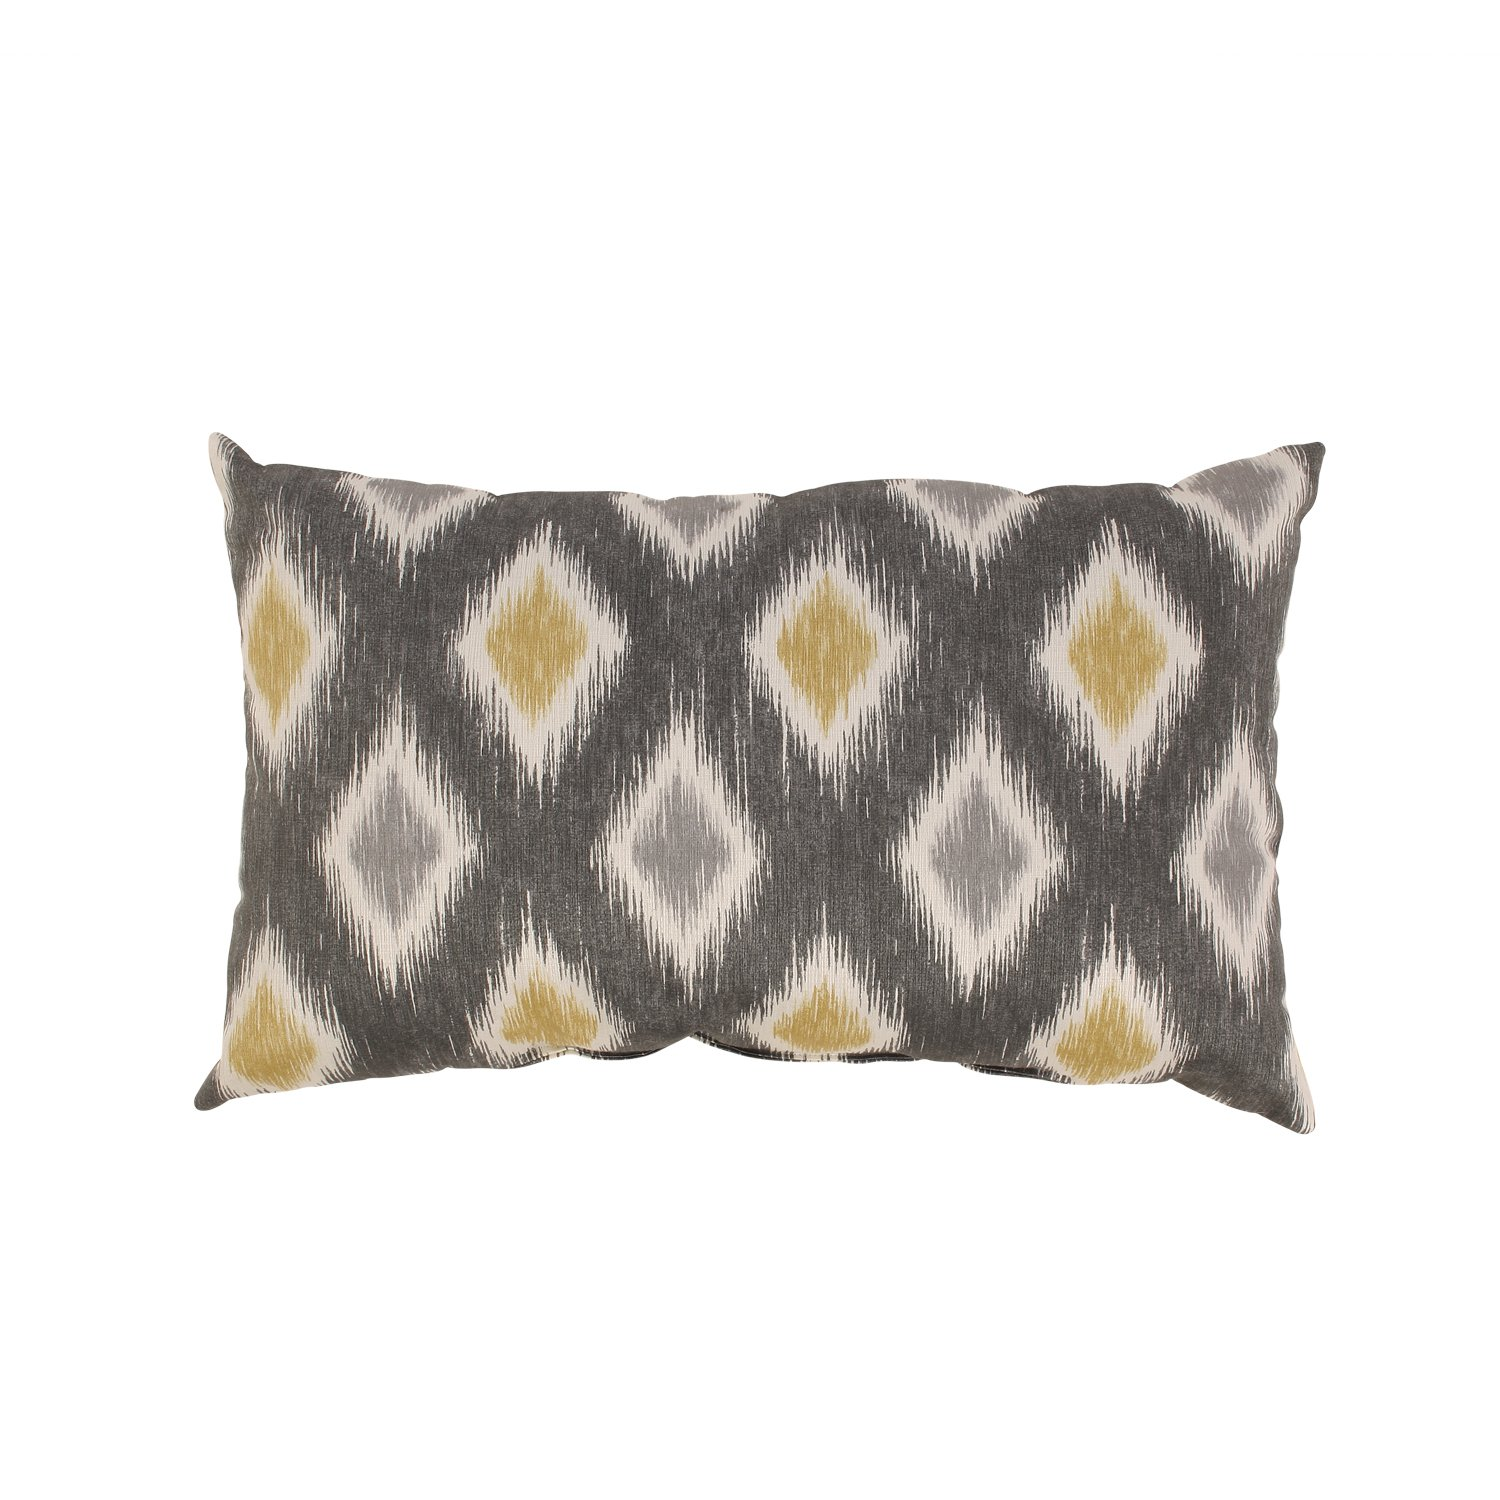 Pillow Perfect Rodrigo Rectangular Throw Pillow, Graphite